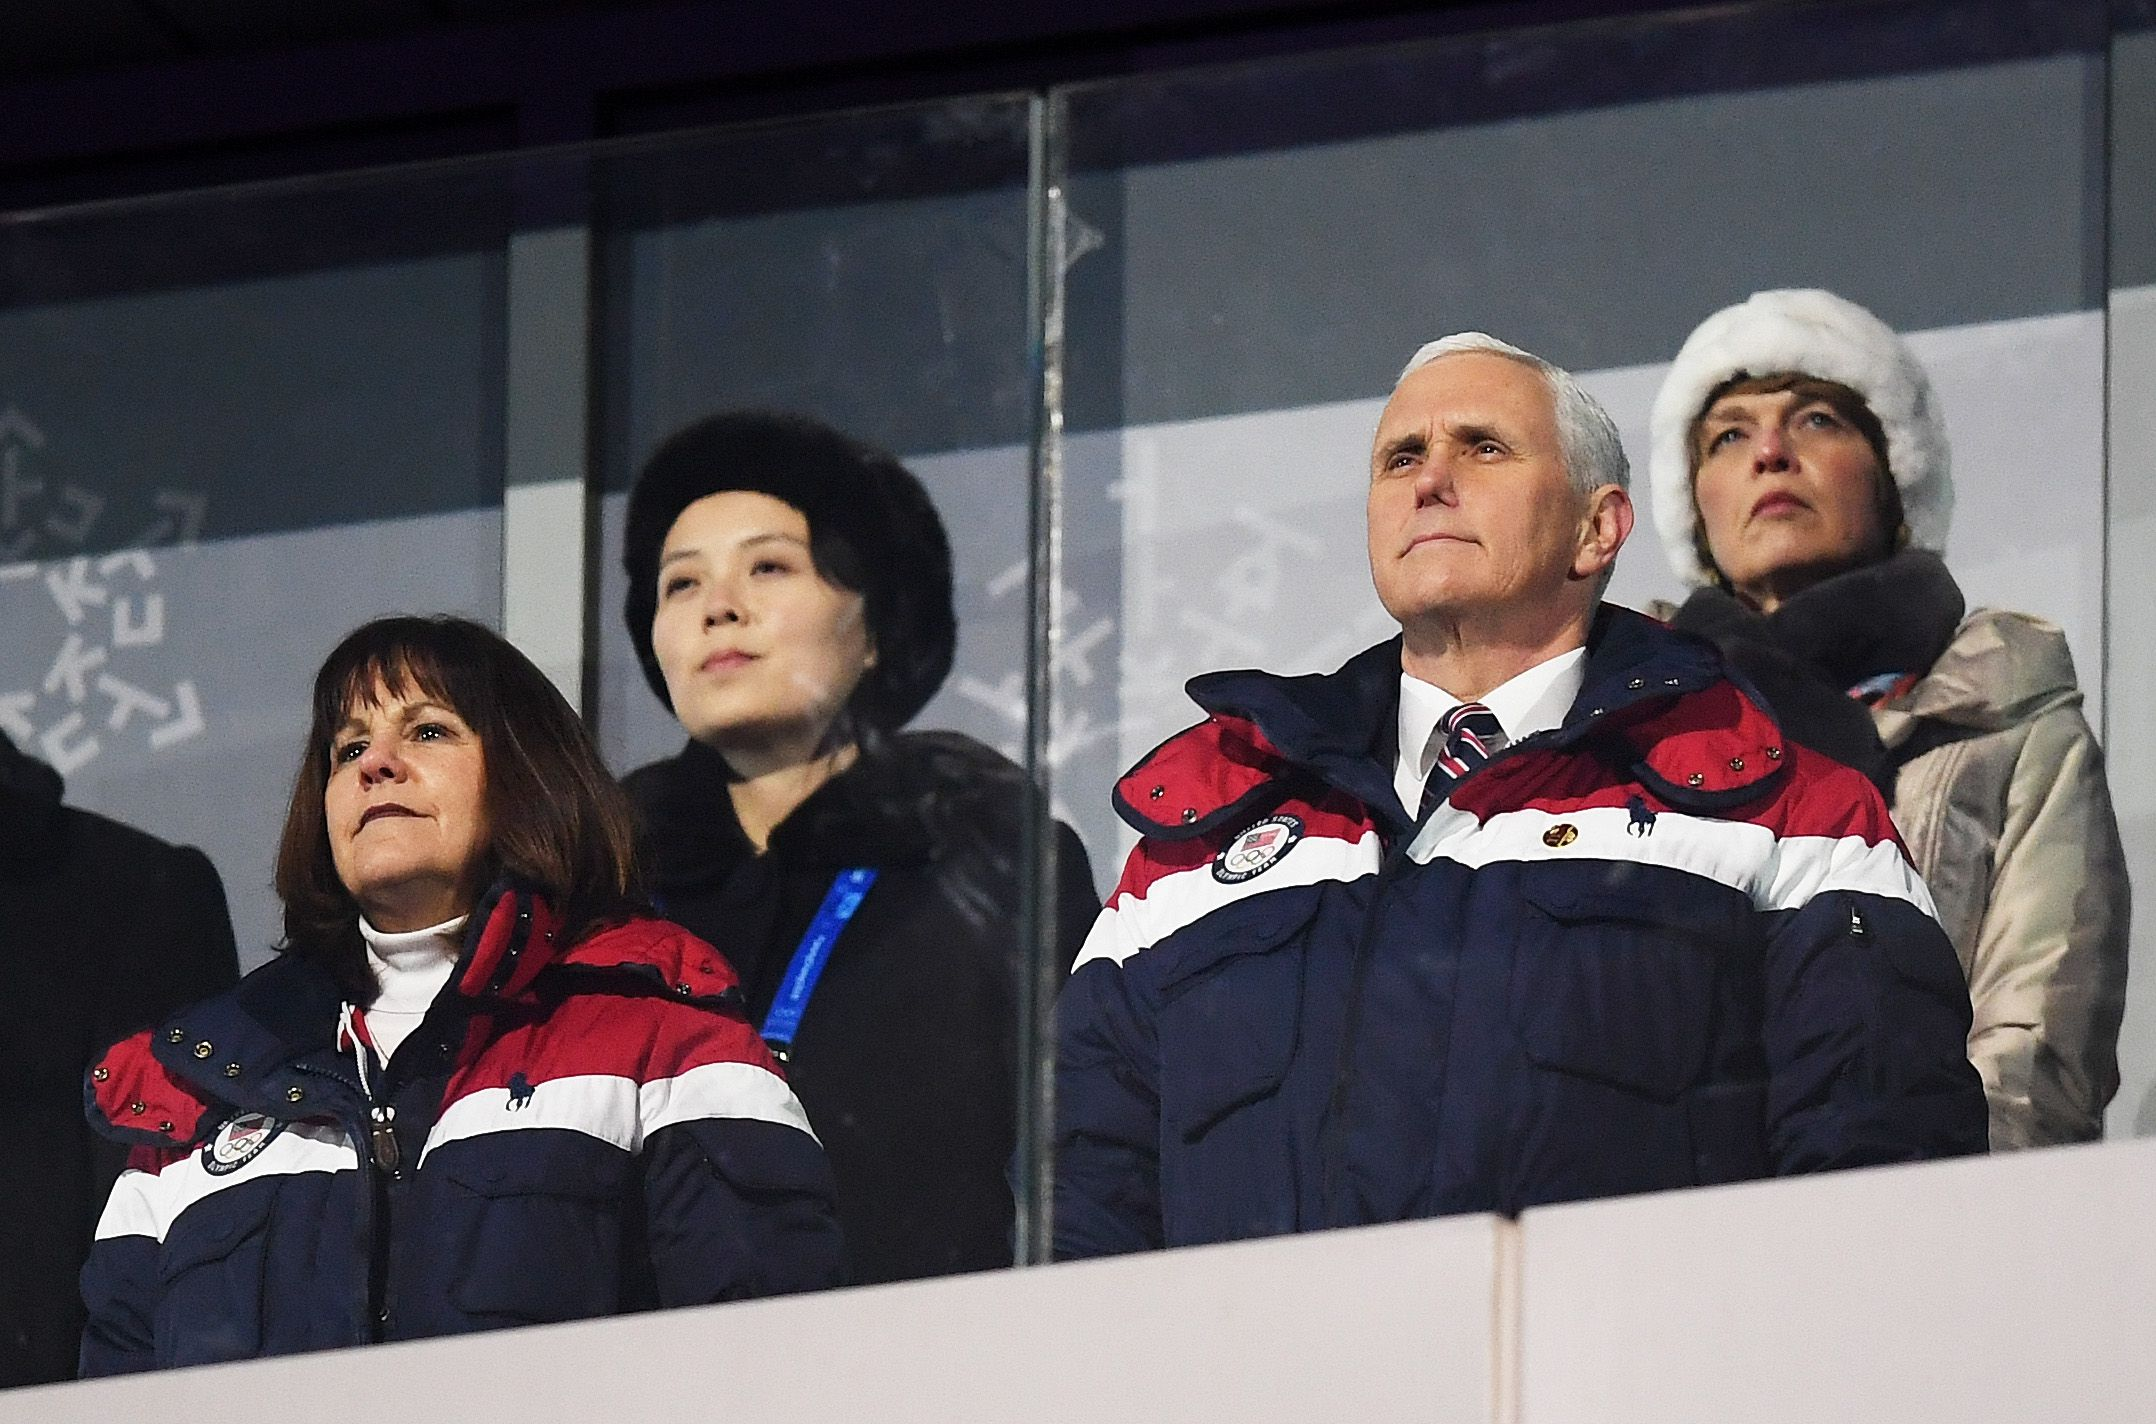 Mike and Karen Pence wearing U.S. Olympic clothes with Kim Jong-un's sister, Kim Yo-jung sitting behind them.